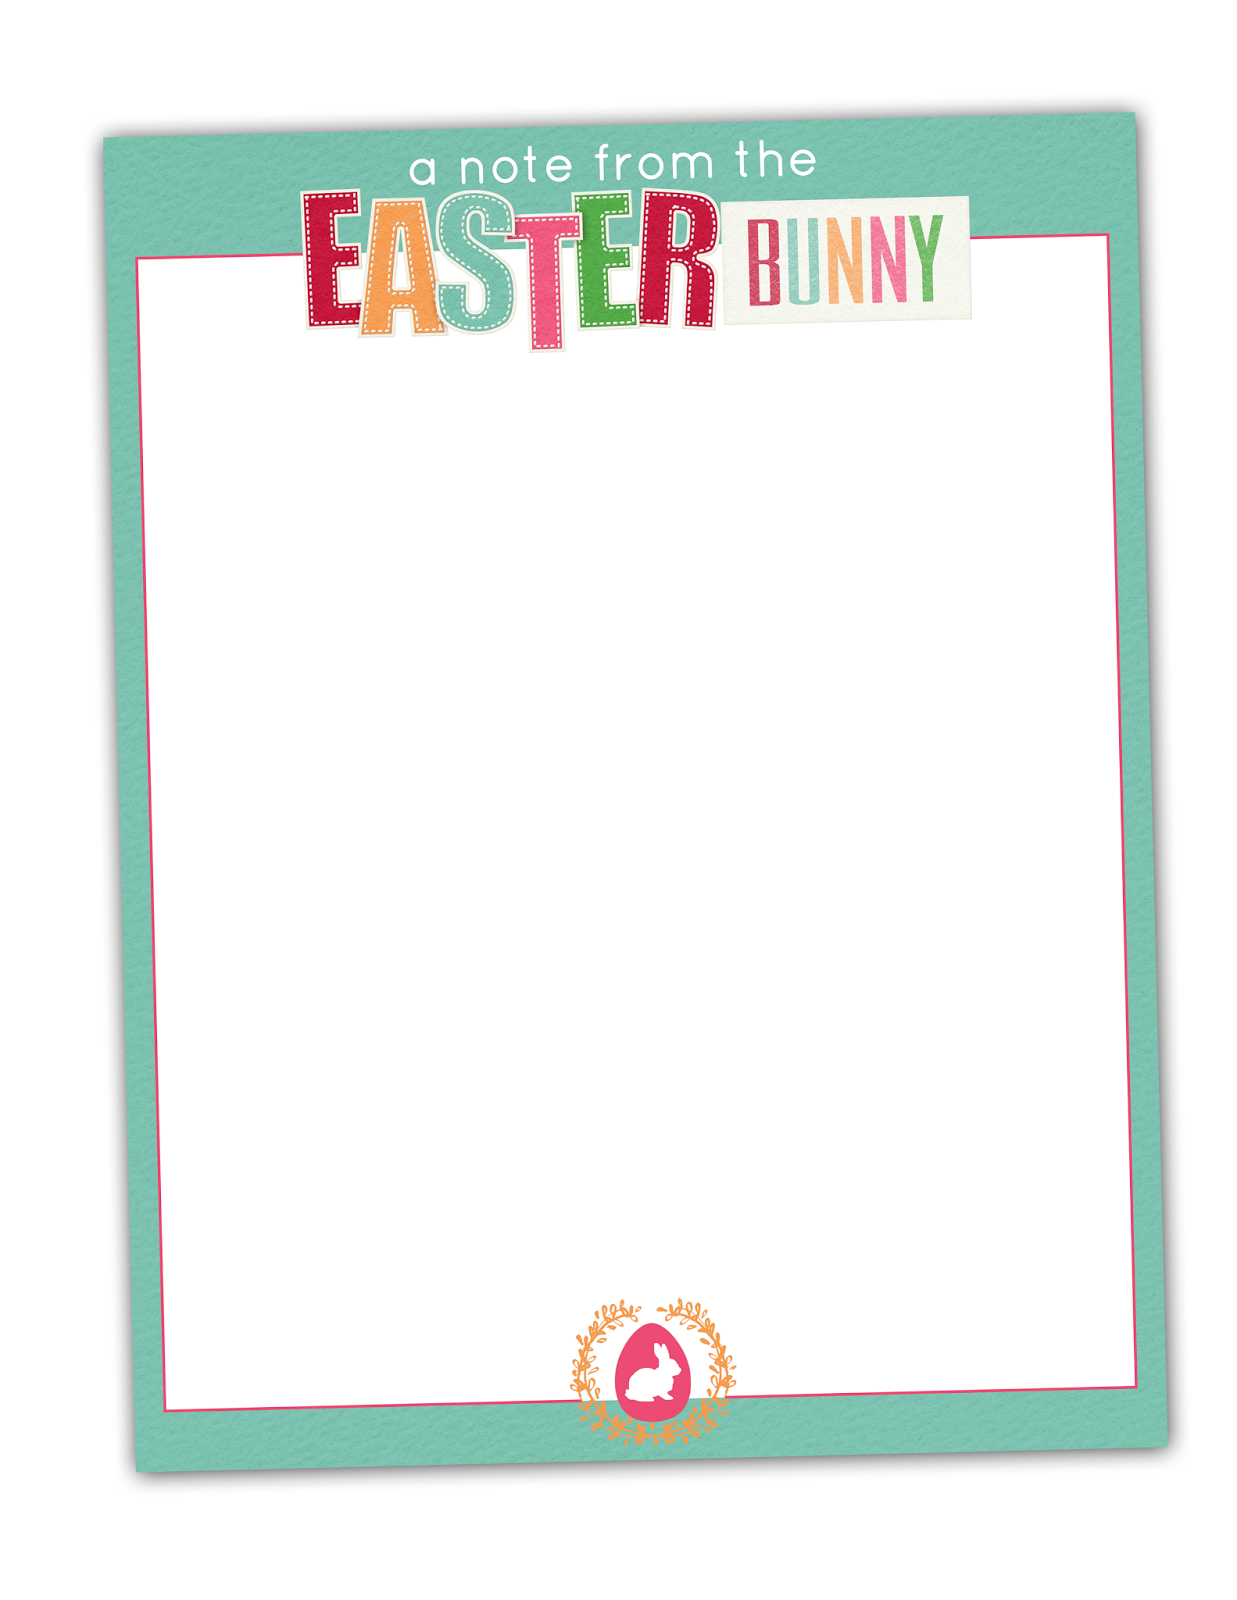 graphic relating to Easter Stationery Printable called Absolutely free Printable Easter Bunny Stationary by means of MK Styles